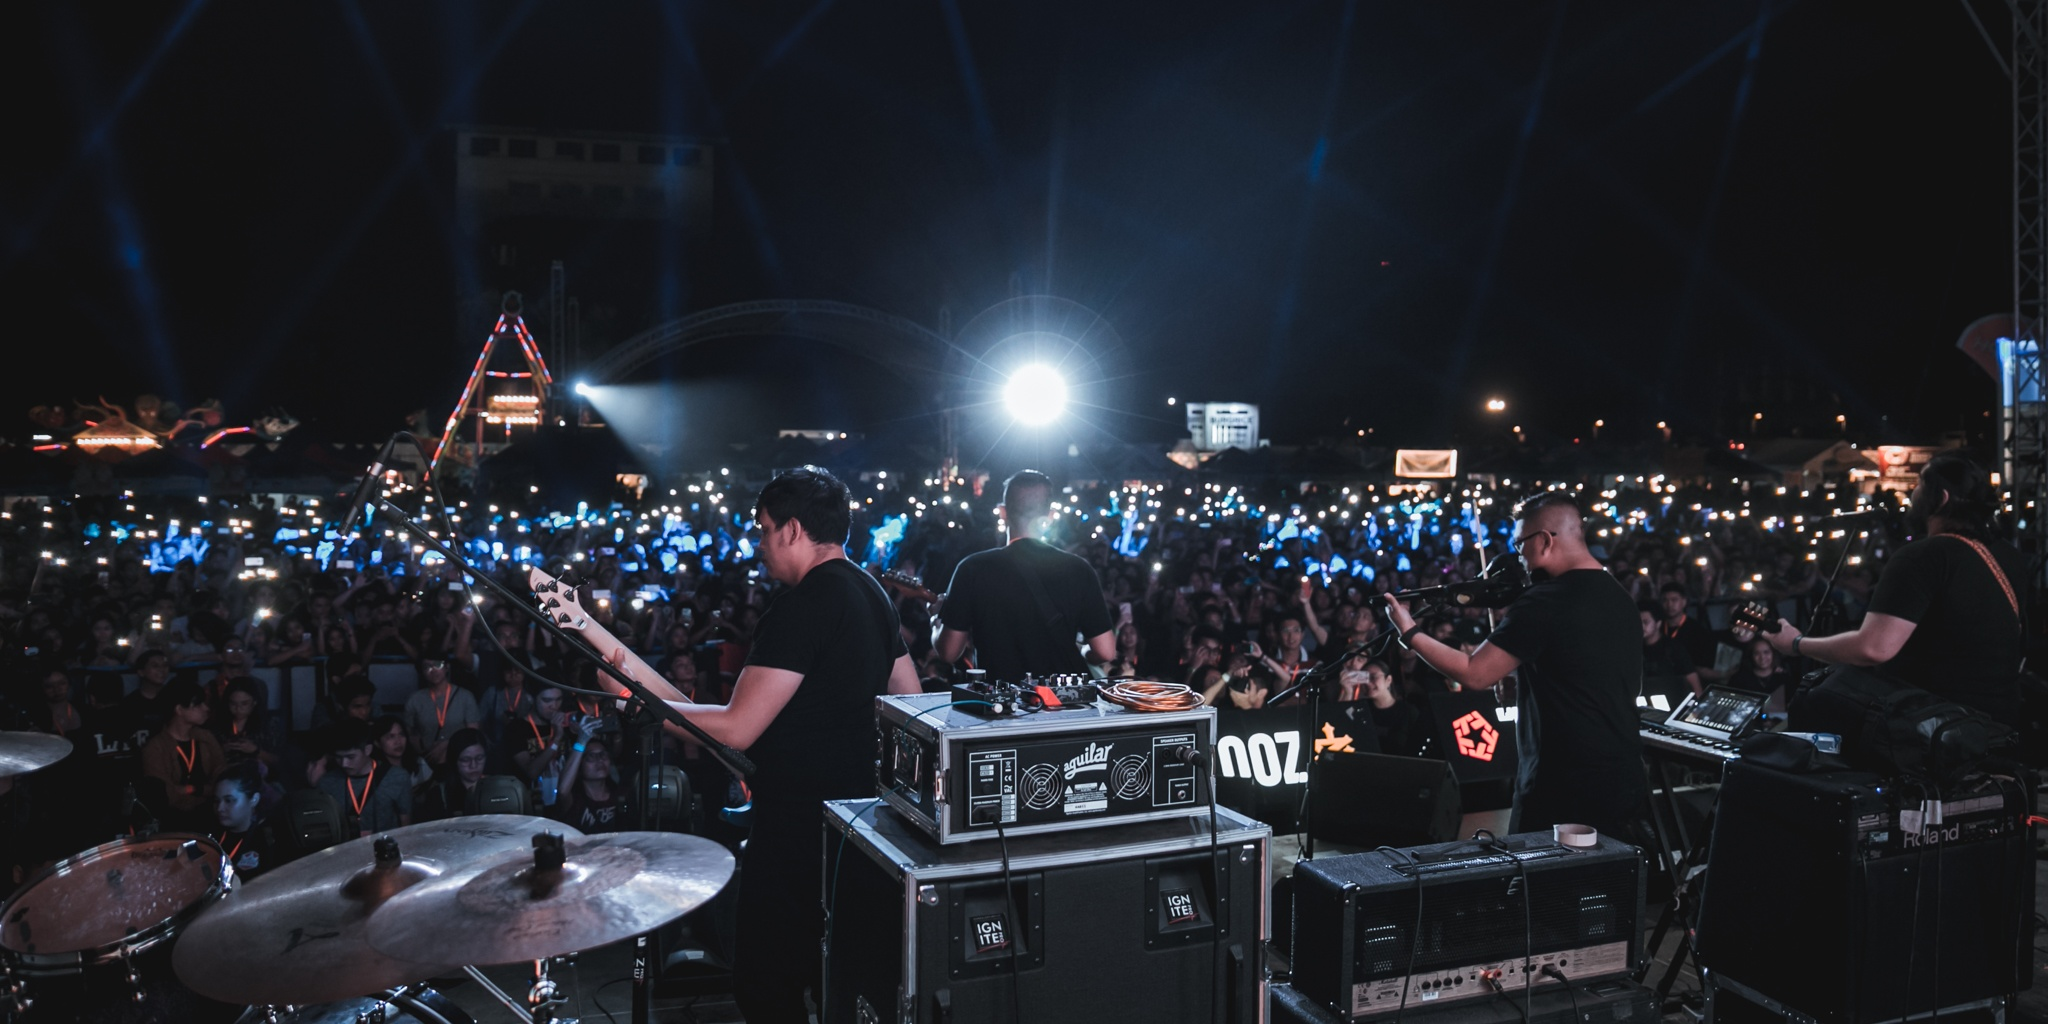 Roots Music Festival rocks its 7th edition with Franco, Hale, Imago, Area25, and more – photo gallery